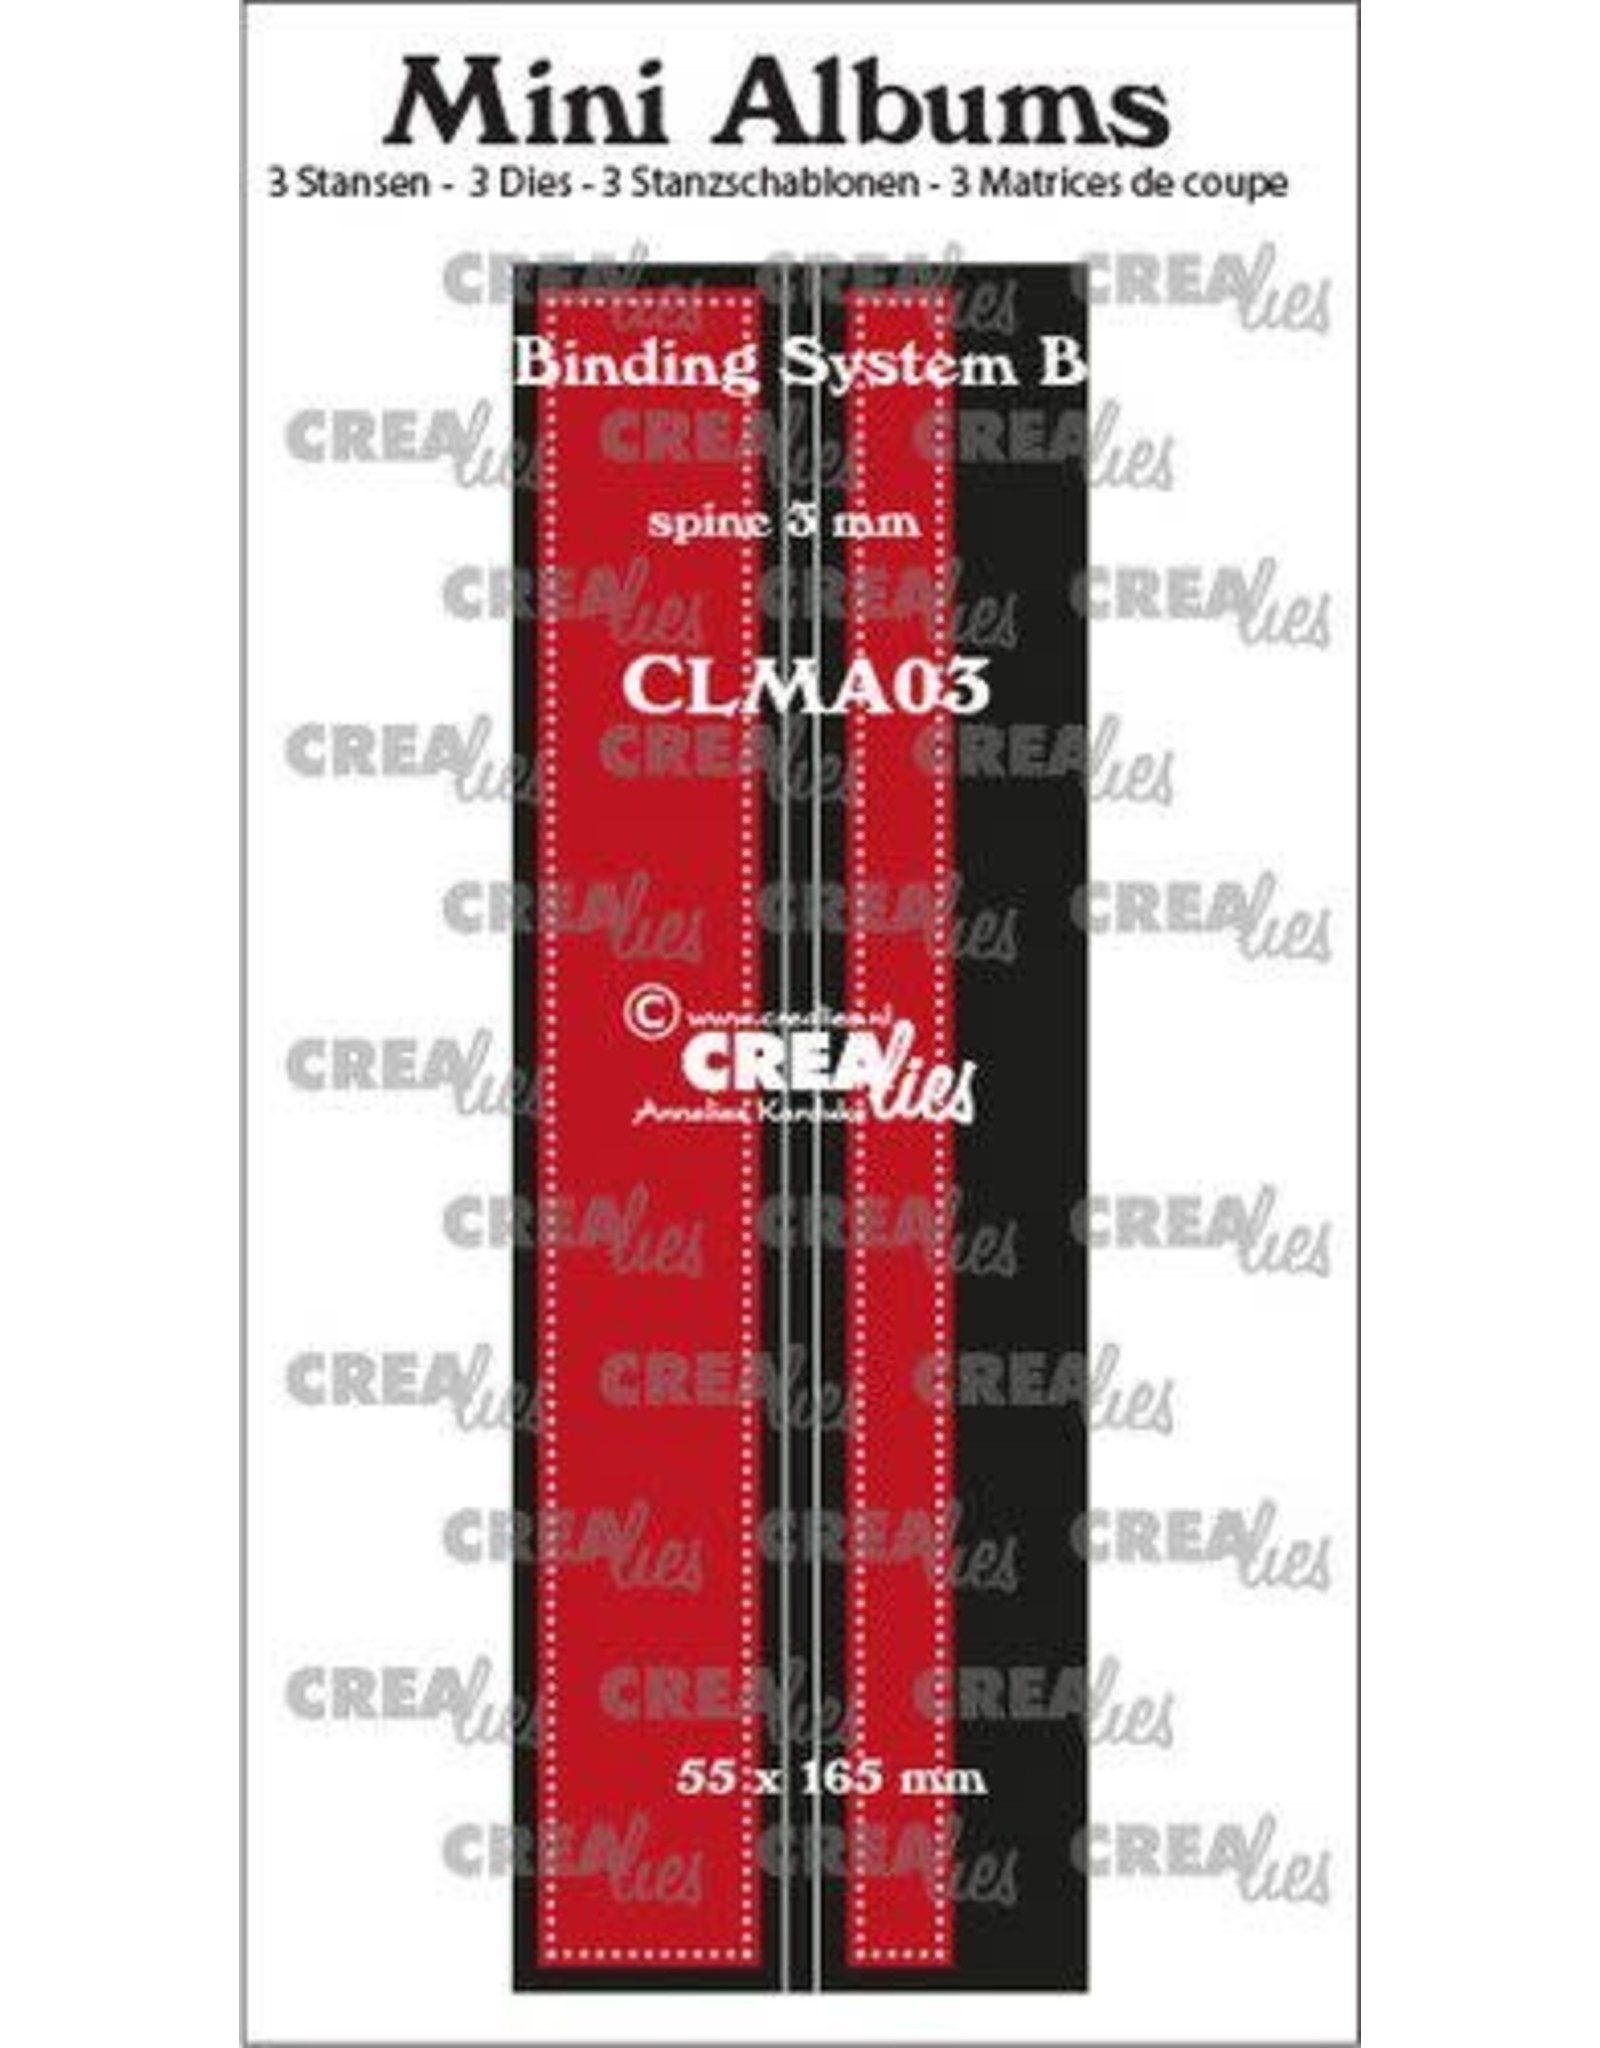 Crealies Crealies stans Mini Albums Bindsysteem B CLMA03 55x165 mm